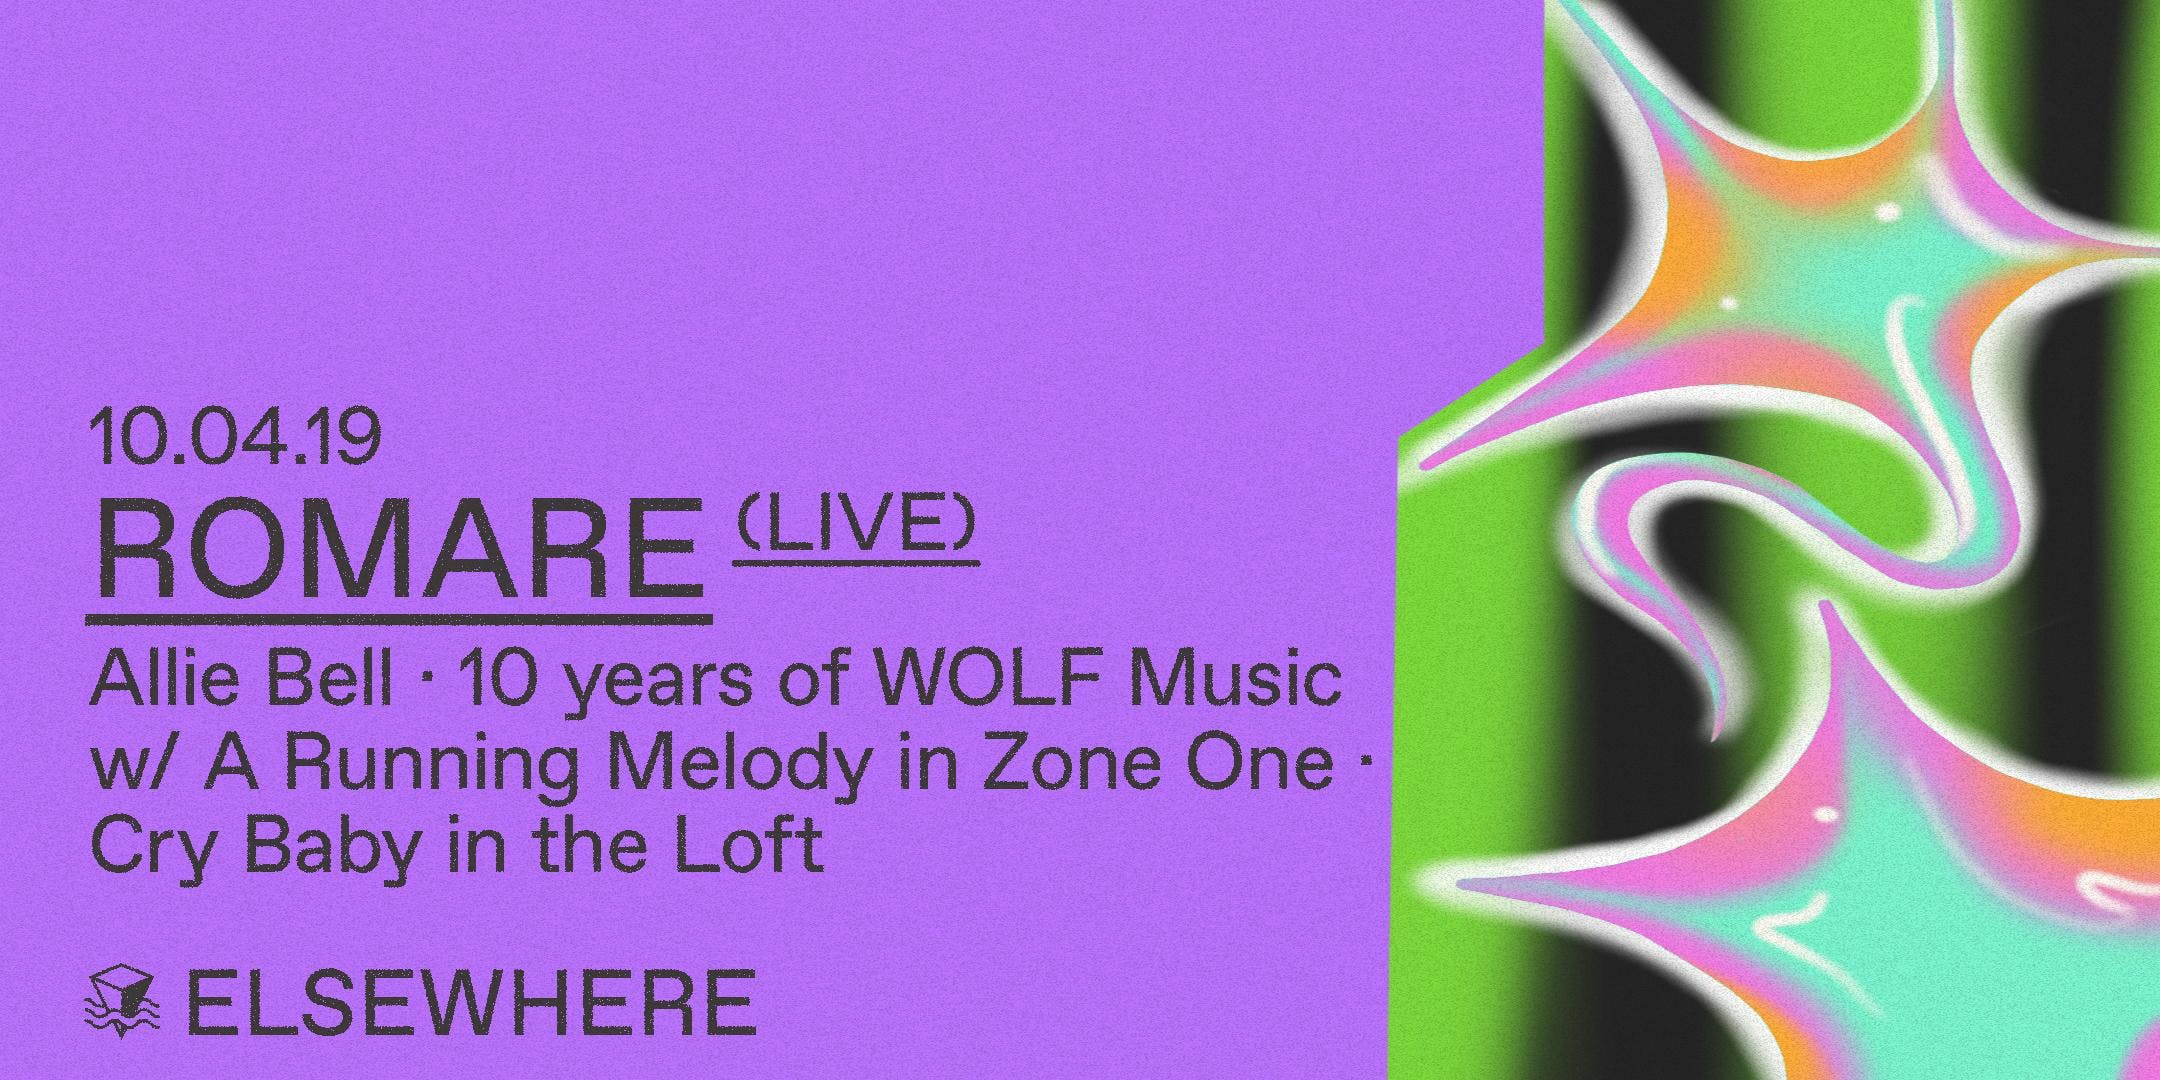 Romare (Live), Allie Bell, 10 Years of WOLF Music w/ A Running Melody & Cry Baby